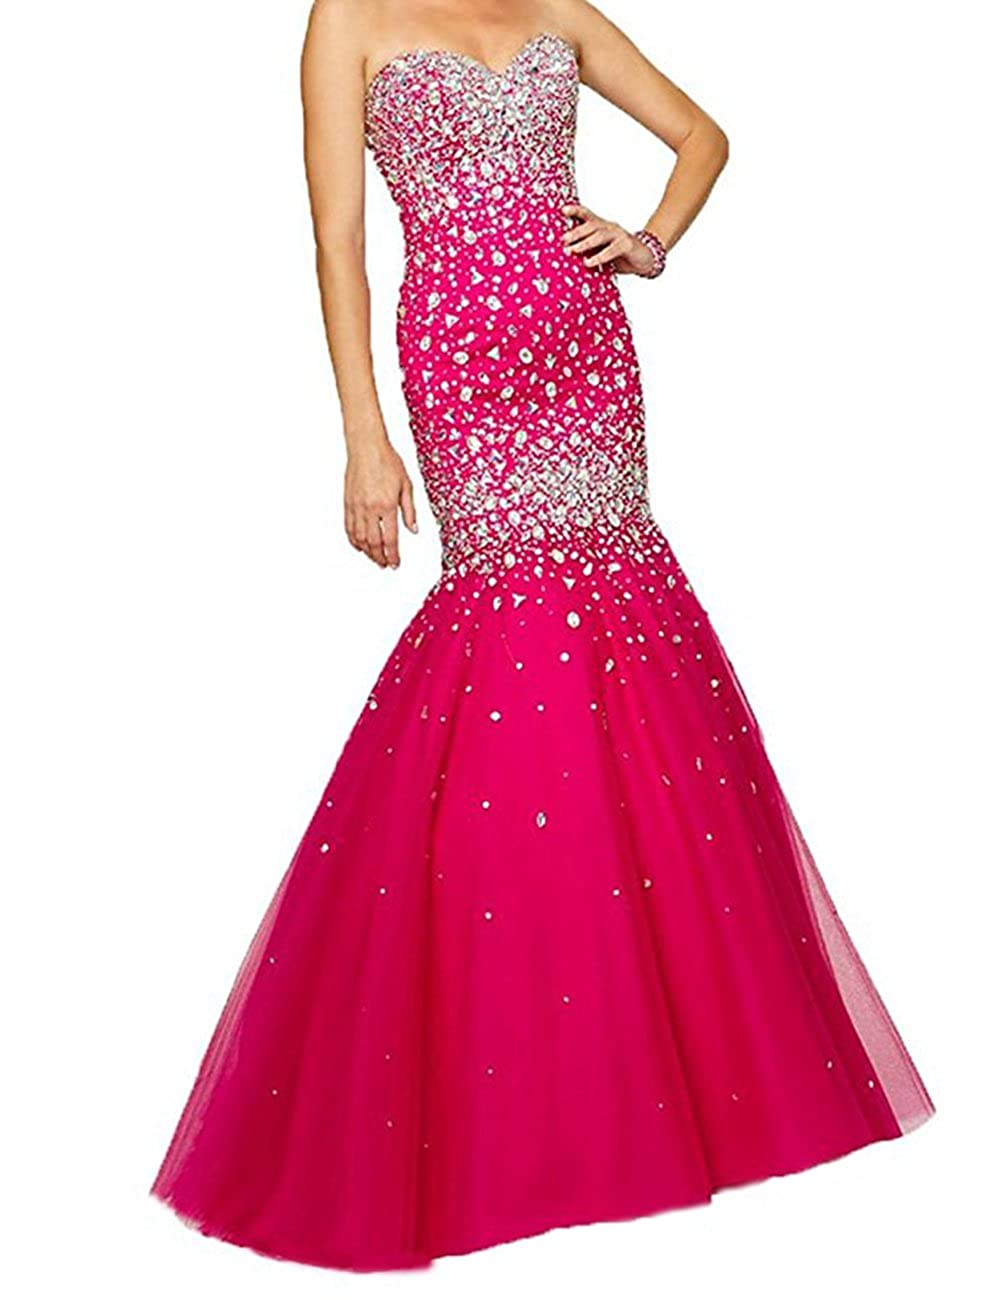 Hot Pink 2 Beautydress Luxury Beaded Lace Up Sweetheart Mermaid Prom Dresses for Women BP116